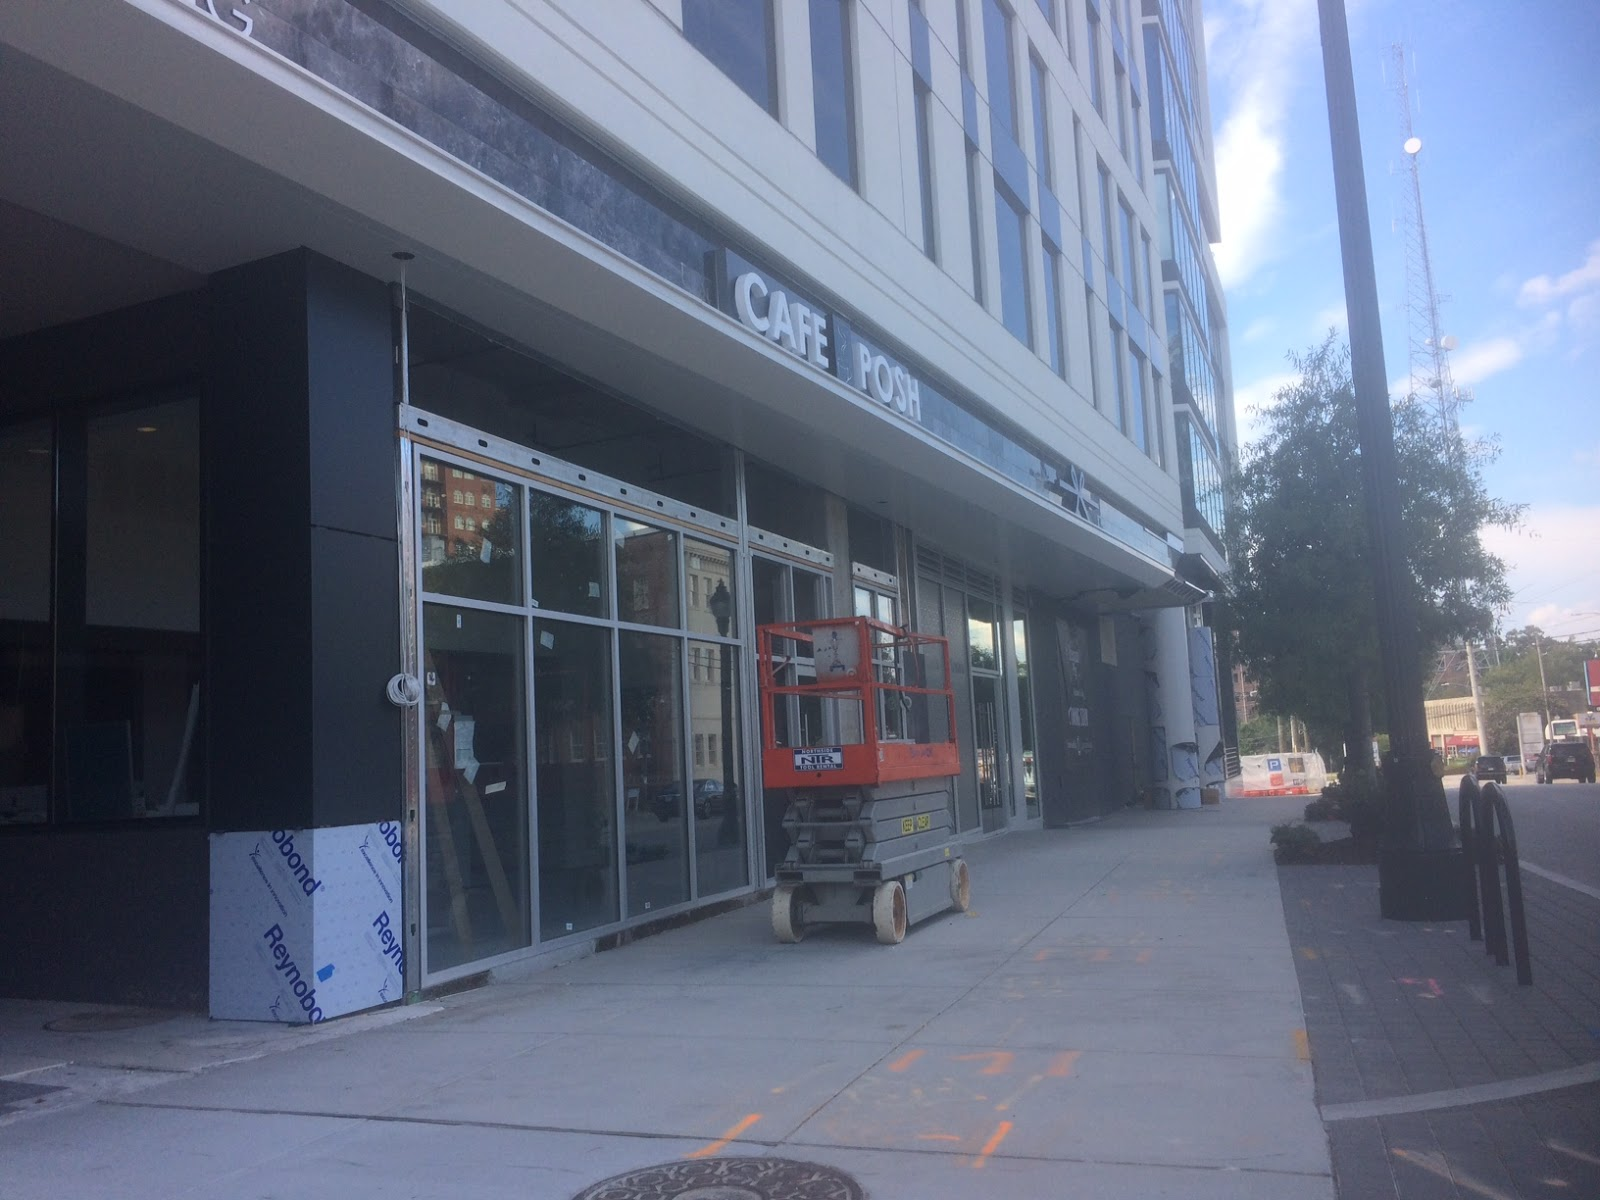 Tomorrow S News Today Atlanta Update Cafe Posh Has Closed In